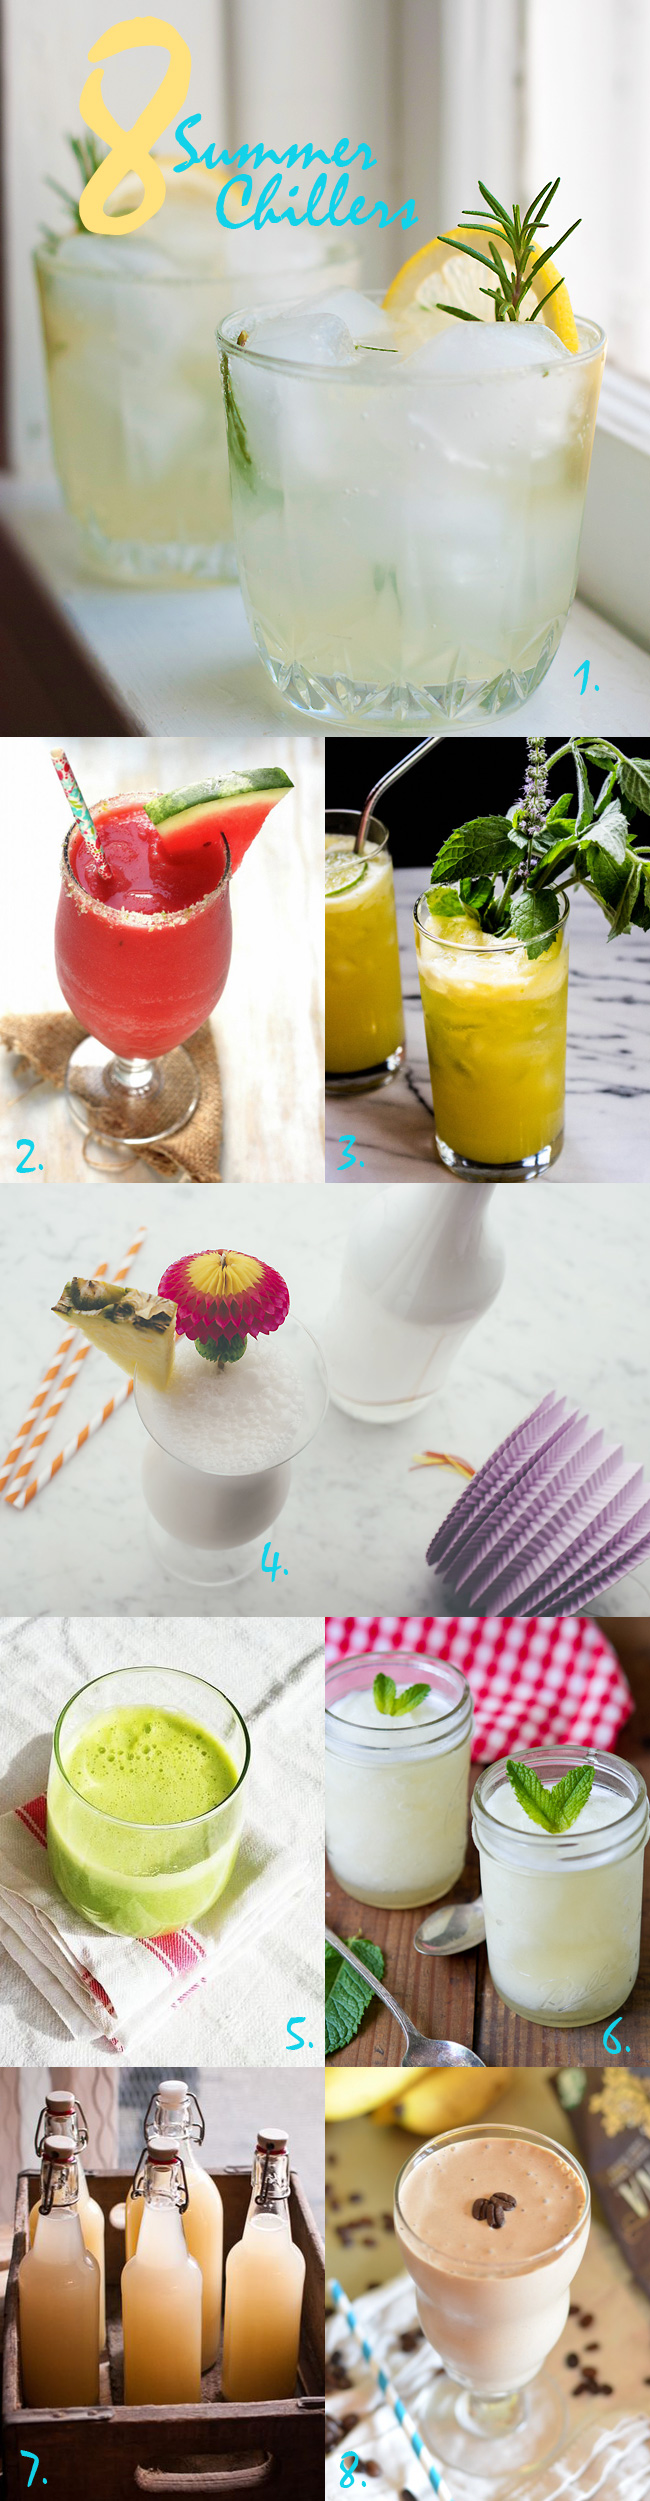 8 Summer Chillers